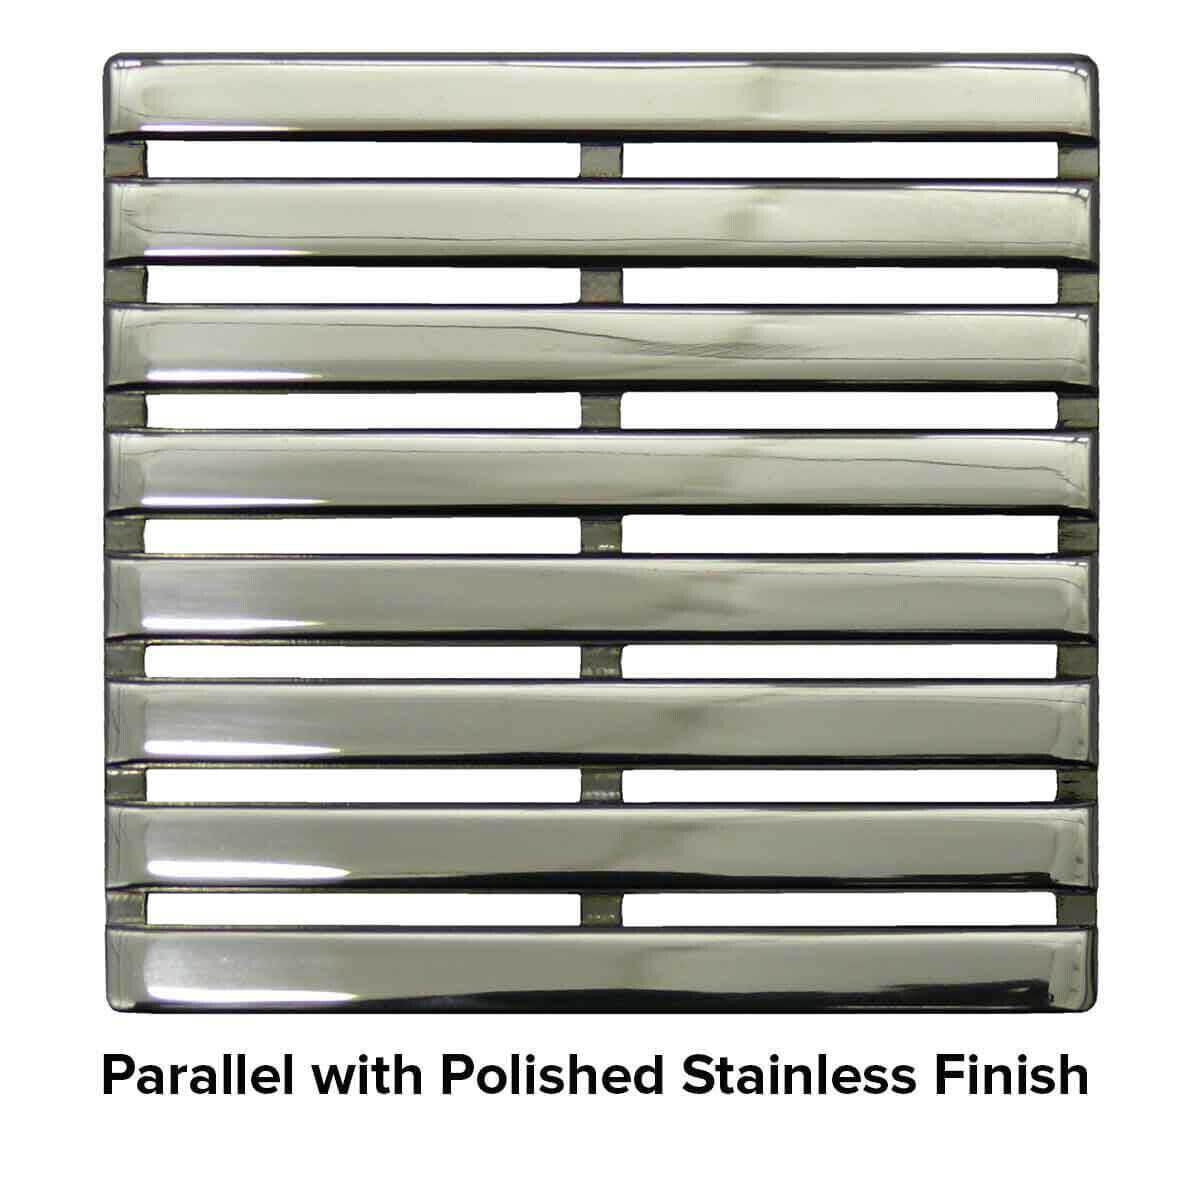 USG 4 inch Shower Grate Polished SS Parallel